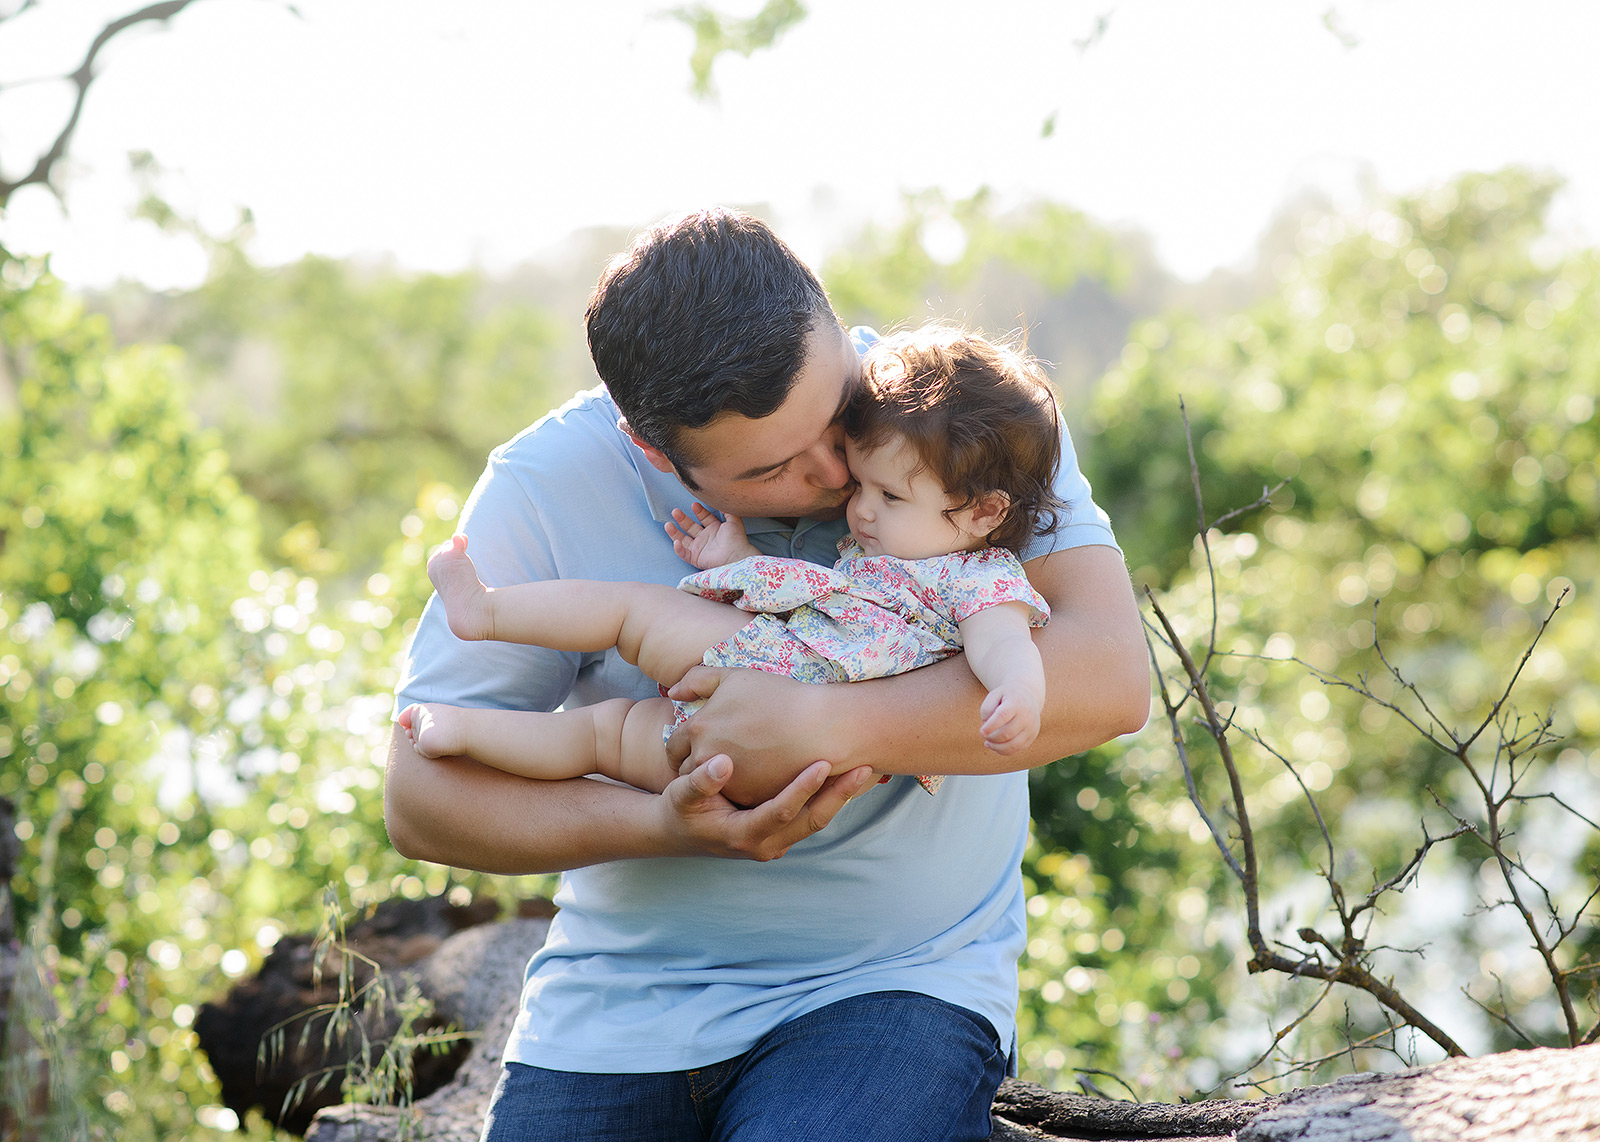 Dad kissing chubby baby on a log in natural light